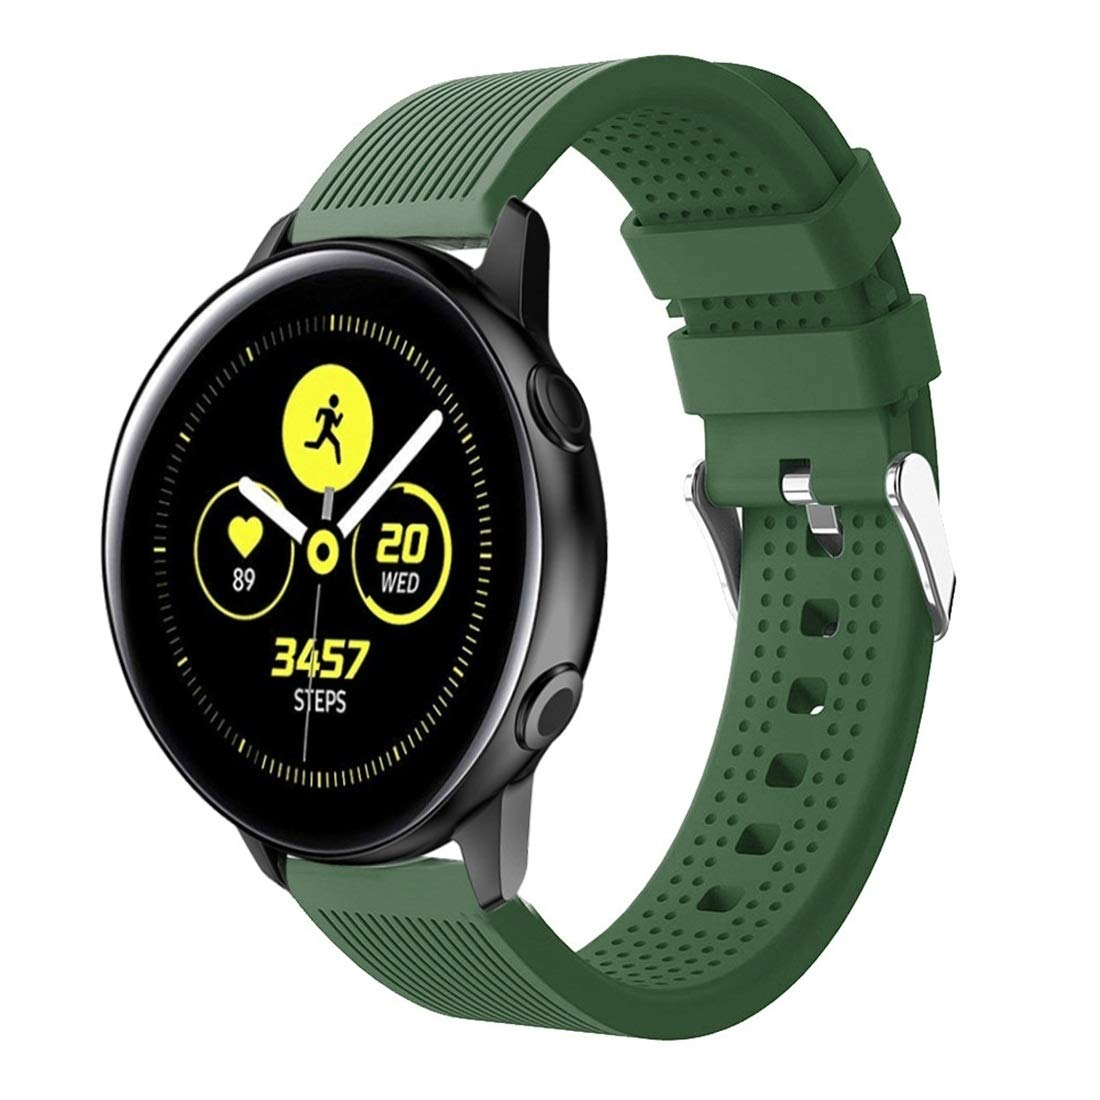 Smart Watch Silicone Wrist Strap Watchband for Garmin Vivoactive 3 Premium Quality (Color : Army Green) by GuiPing